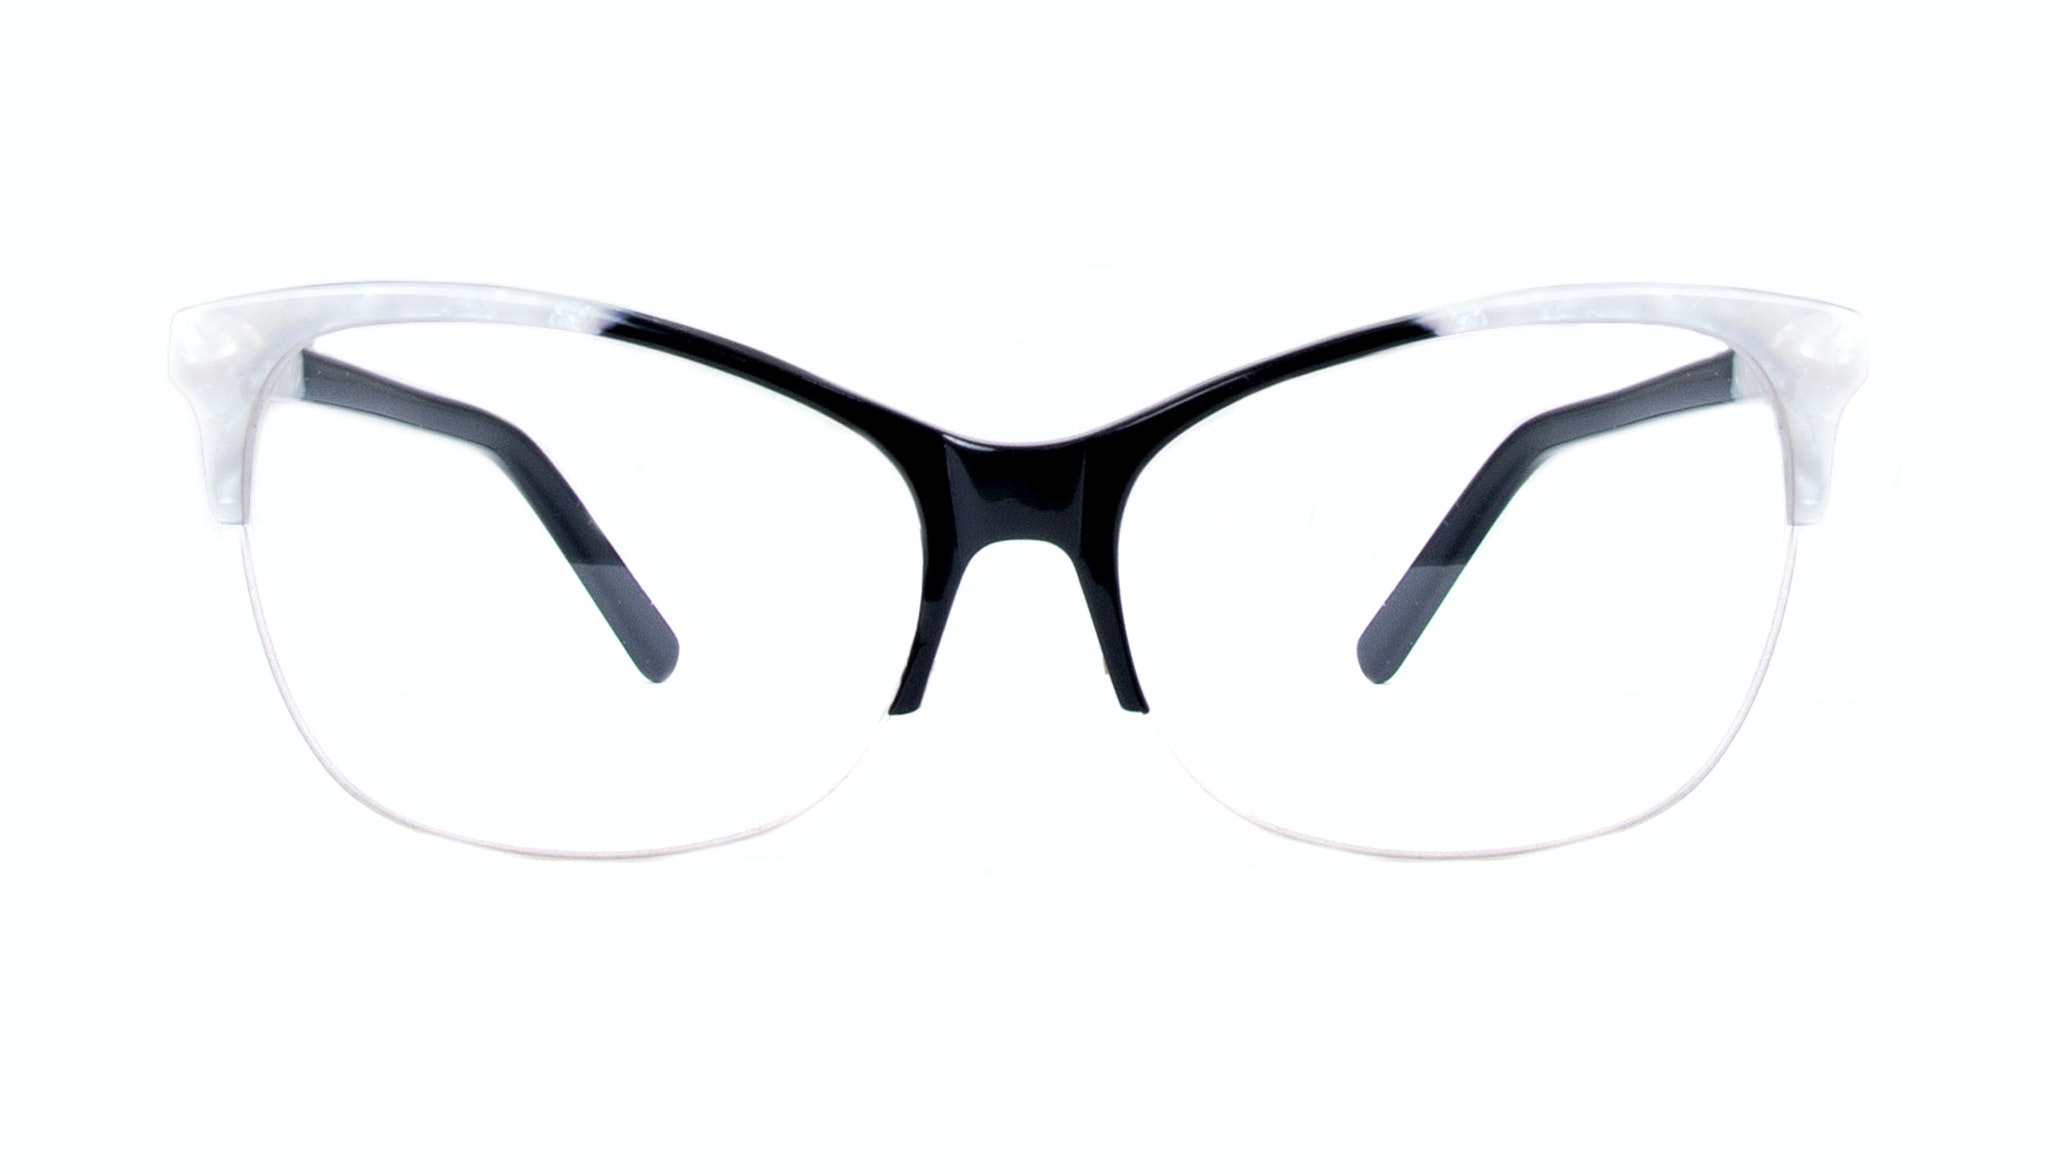 Affordable Fashion Glasses Cat Eye Rectangle Semi-Rimless Eyeglasses Women Flair Light Onyx Pearl Front